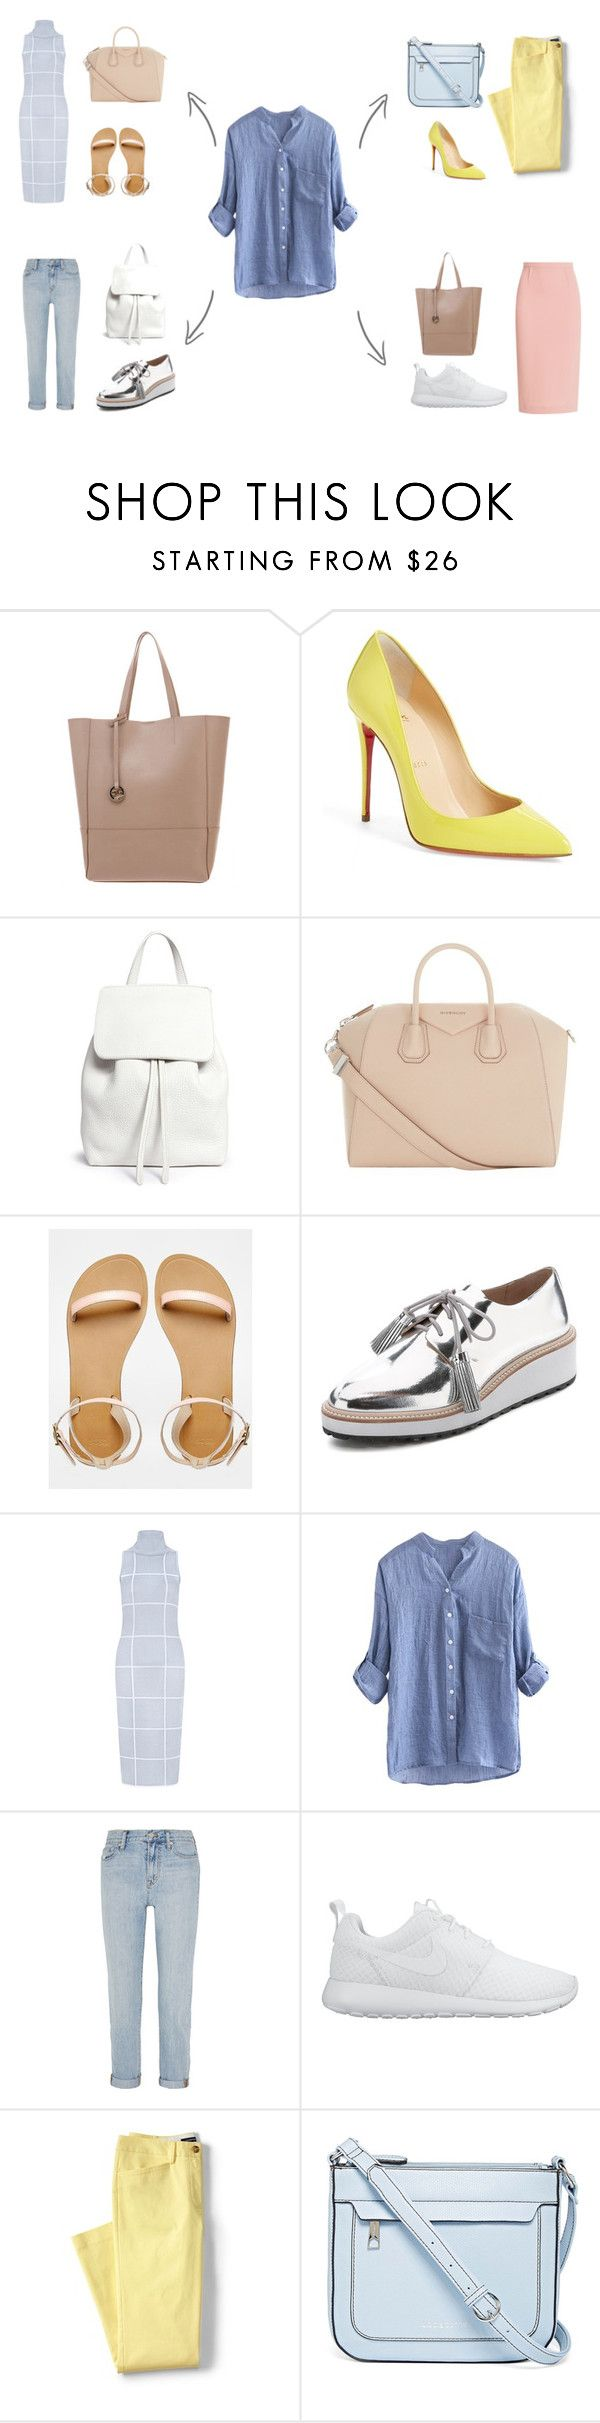 """рубашка база лето холодный"" by mrsgreeen ❤ liked on Polyvore featuring Christian Louboutin, Mansur Gavriel, Givenchy, ASOS, Loeffler Randall, C/MEO COLLECTIVE, Madewell, NIKE, Lands' End and Liz Claiborne"